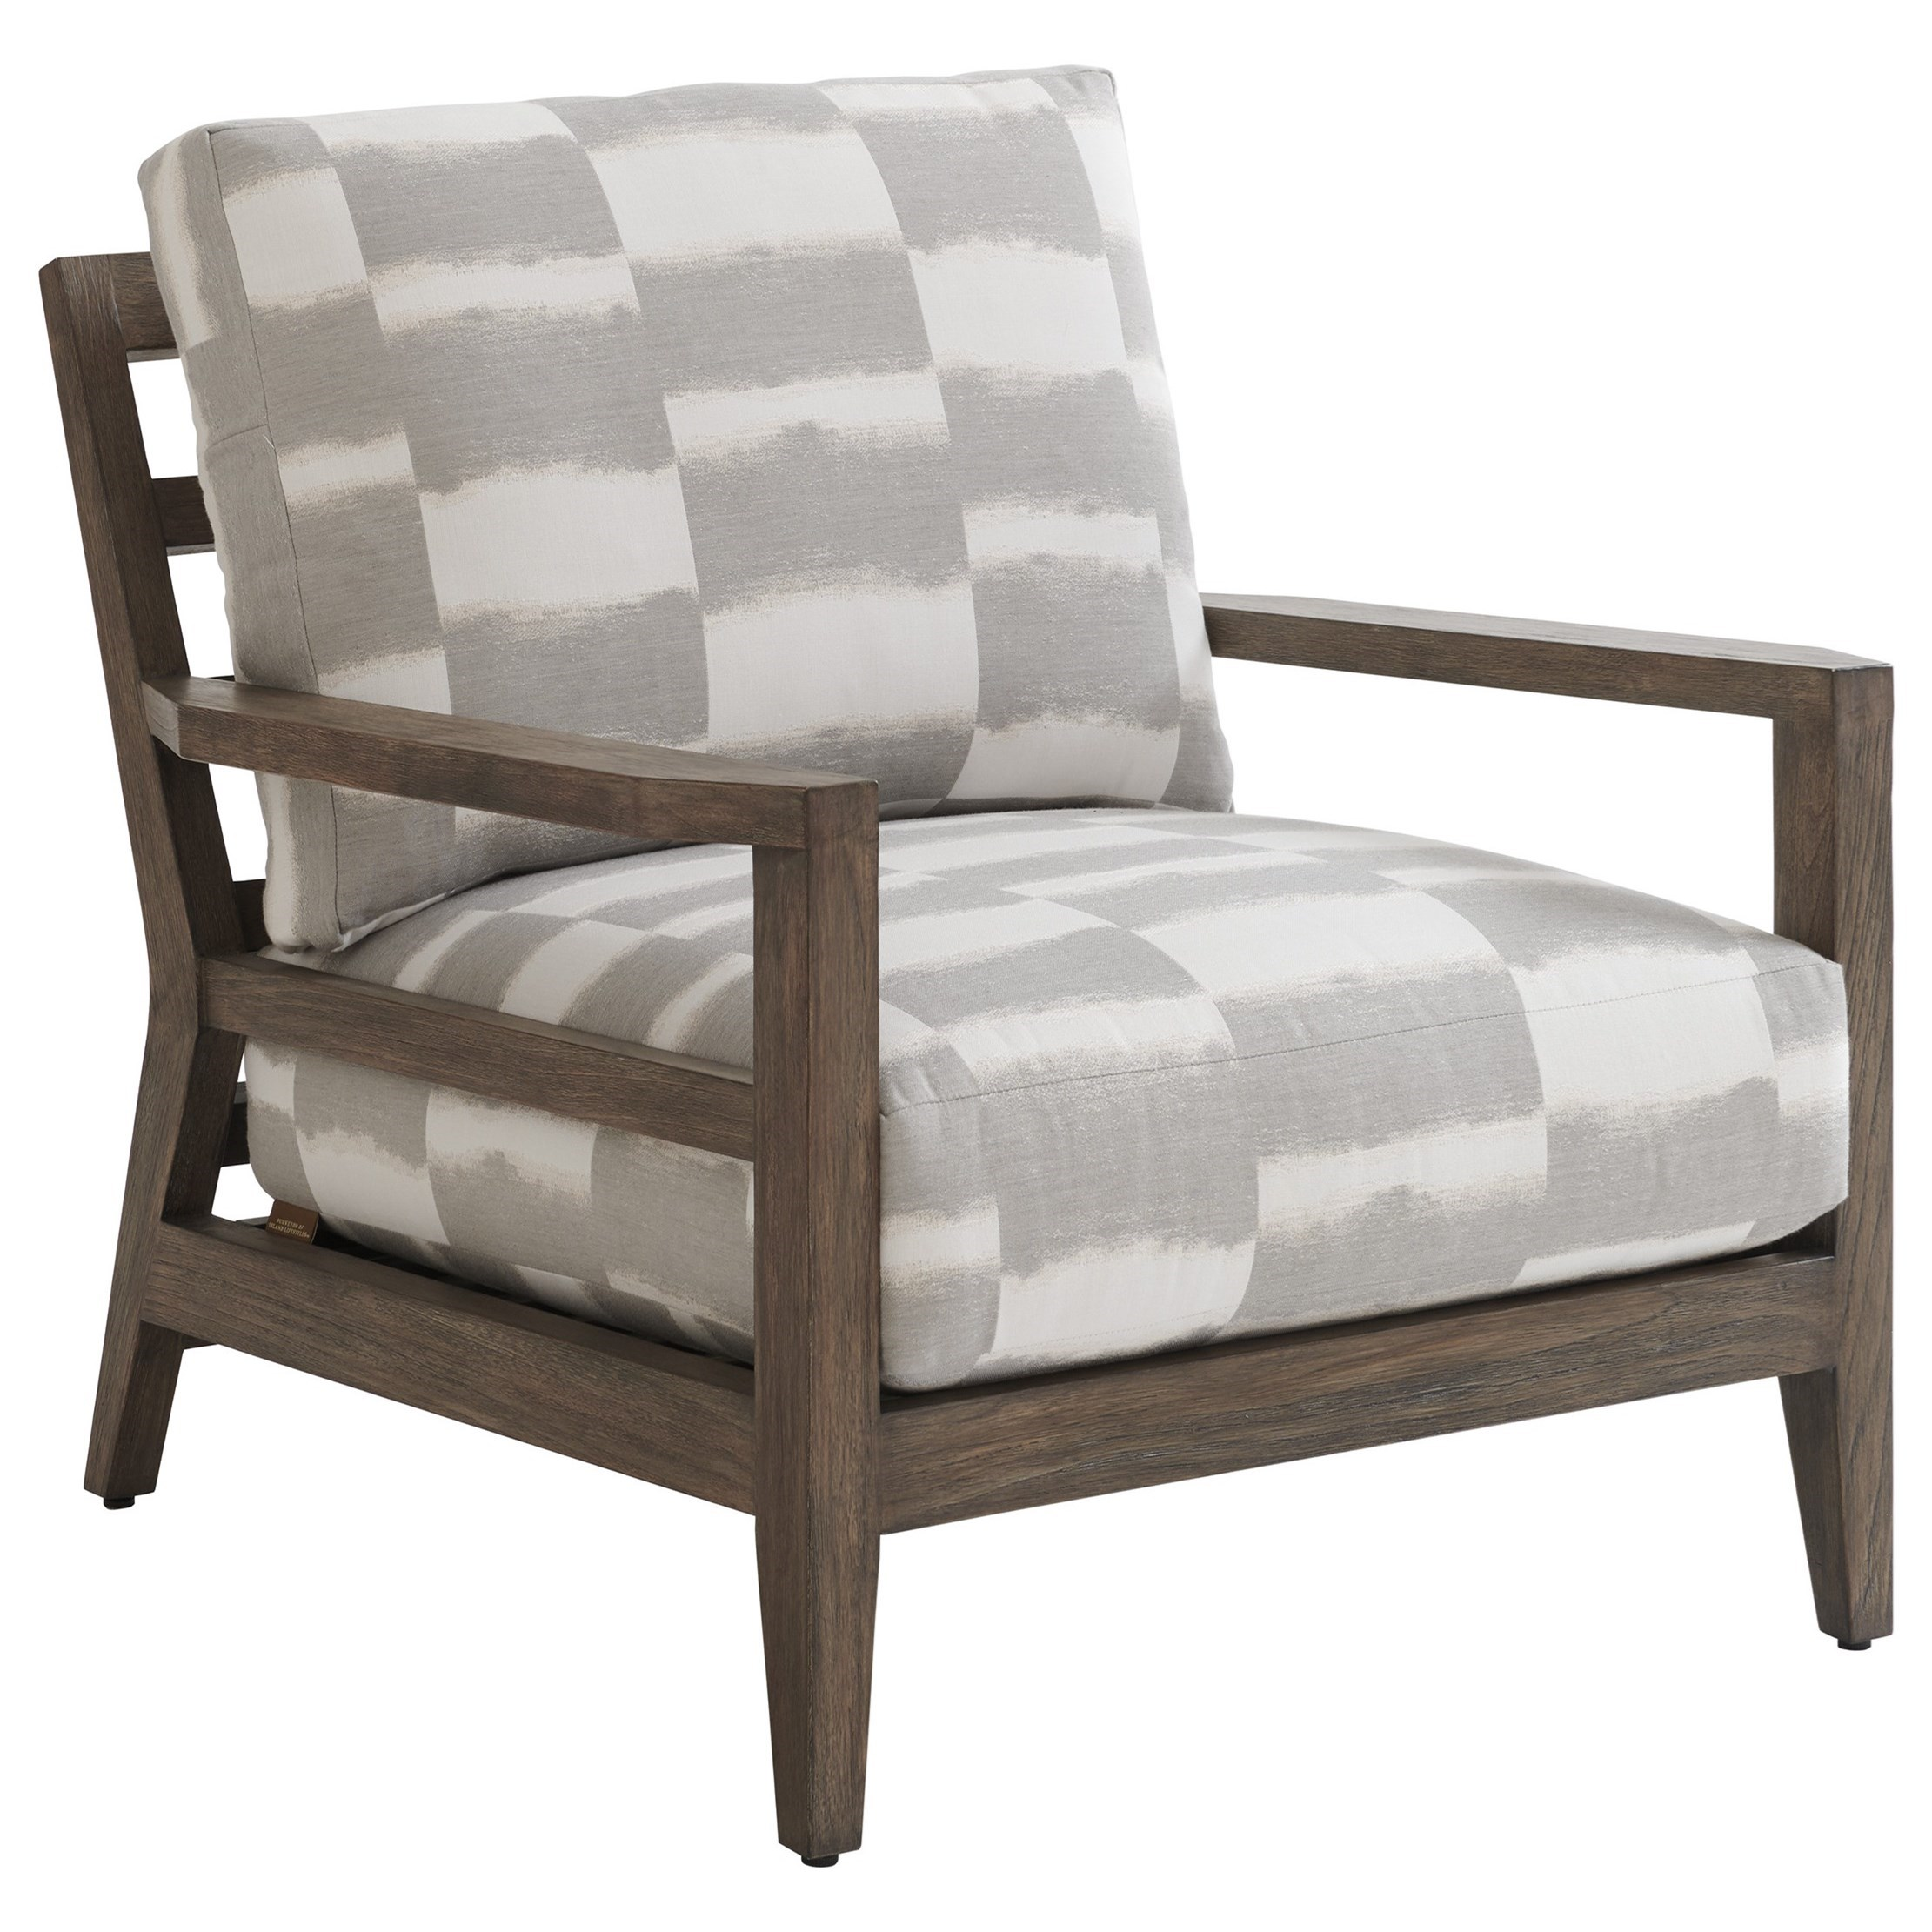 La Jolla Lounge Chair by Tommy Bahama Outdoor Living at Baer's Furniture